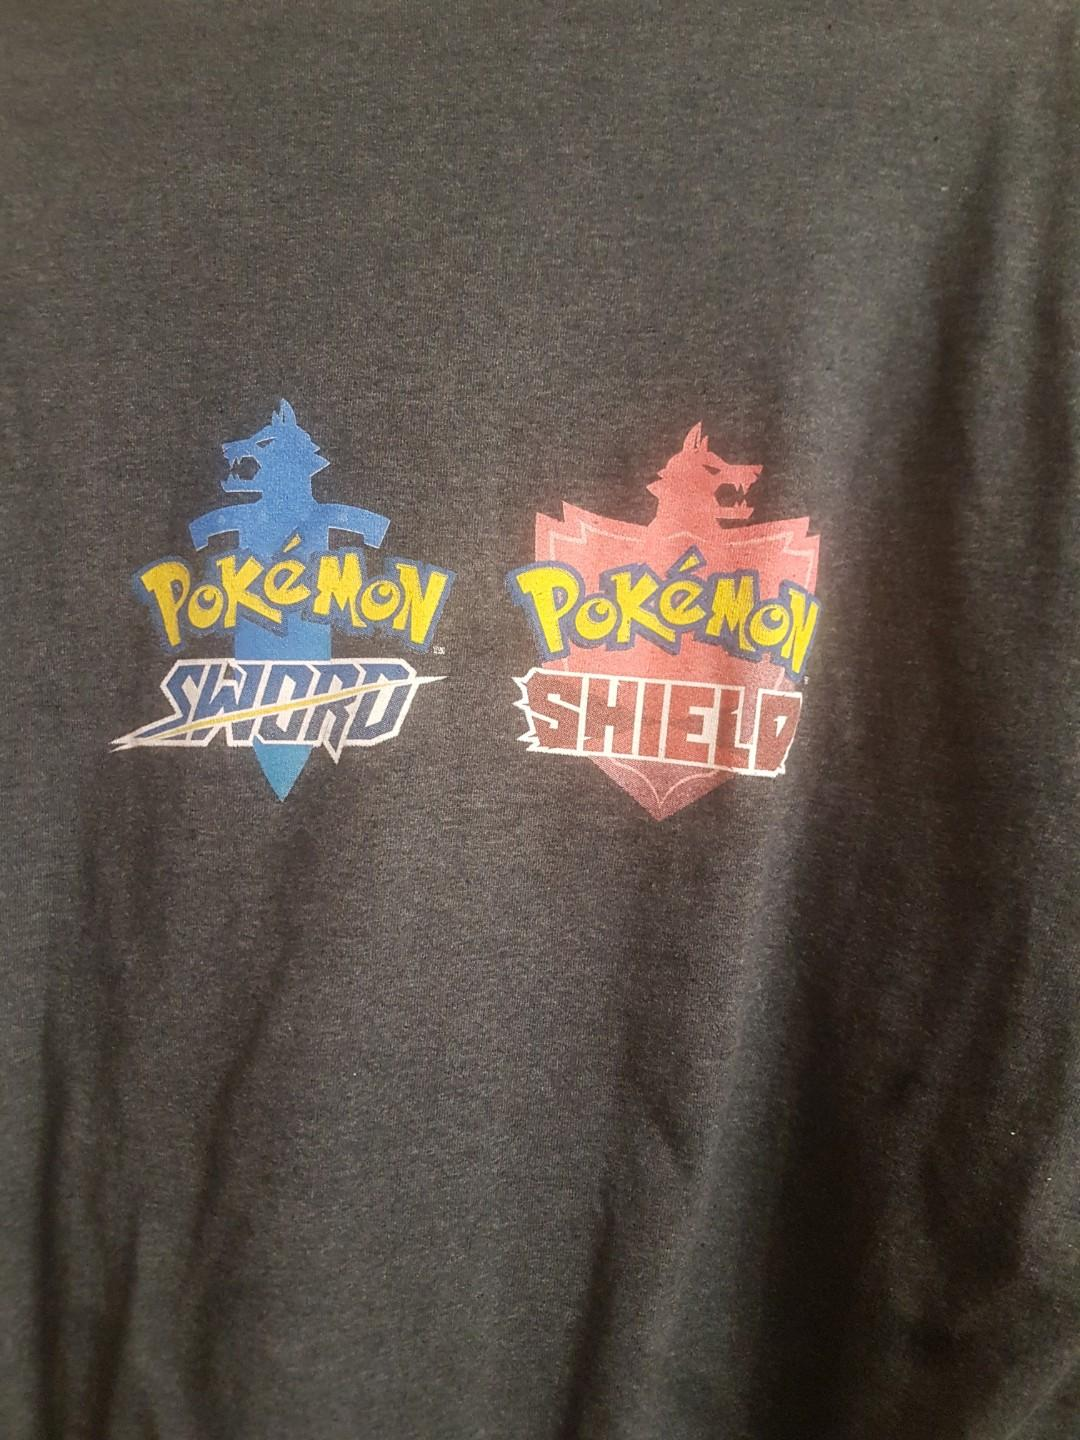 Nintendo Switch Promotional Shirts Super Smash Bros and Pokemon Sword and Shield